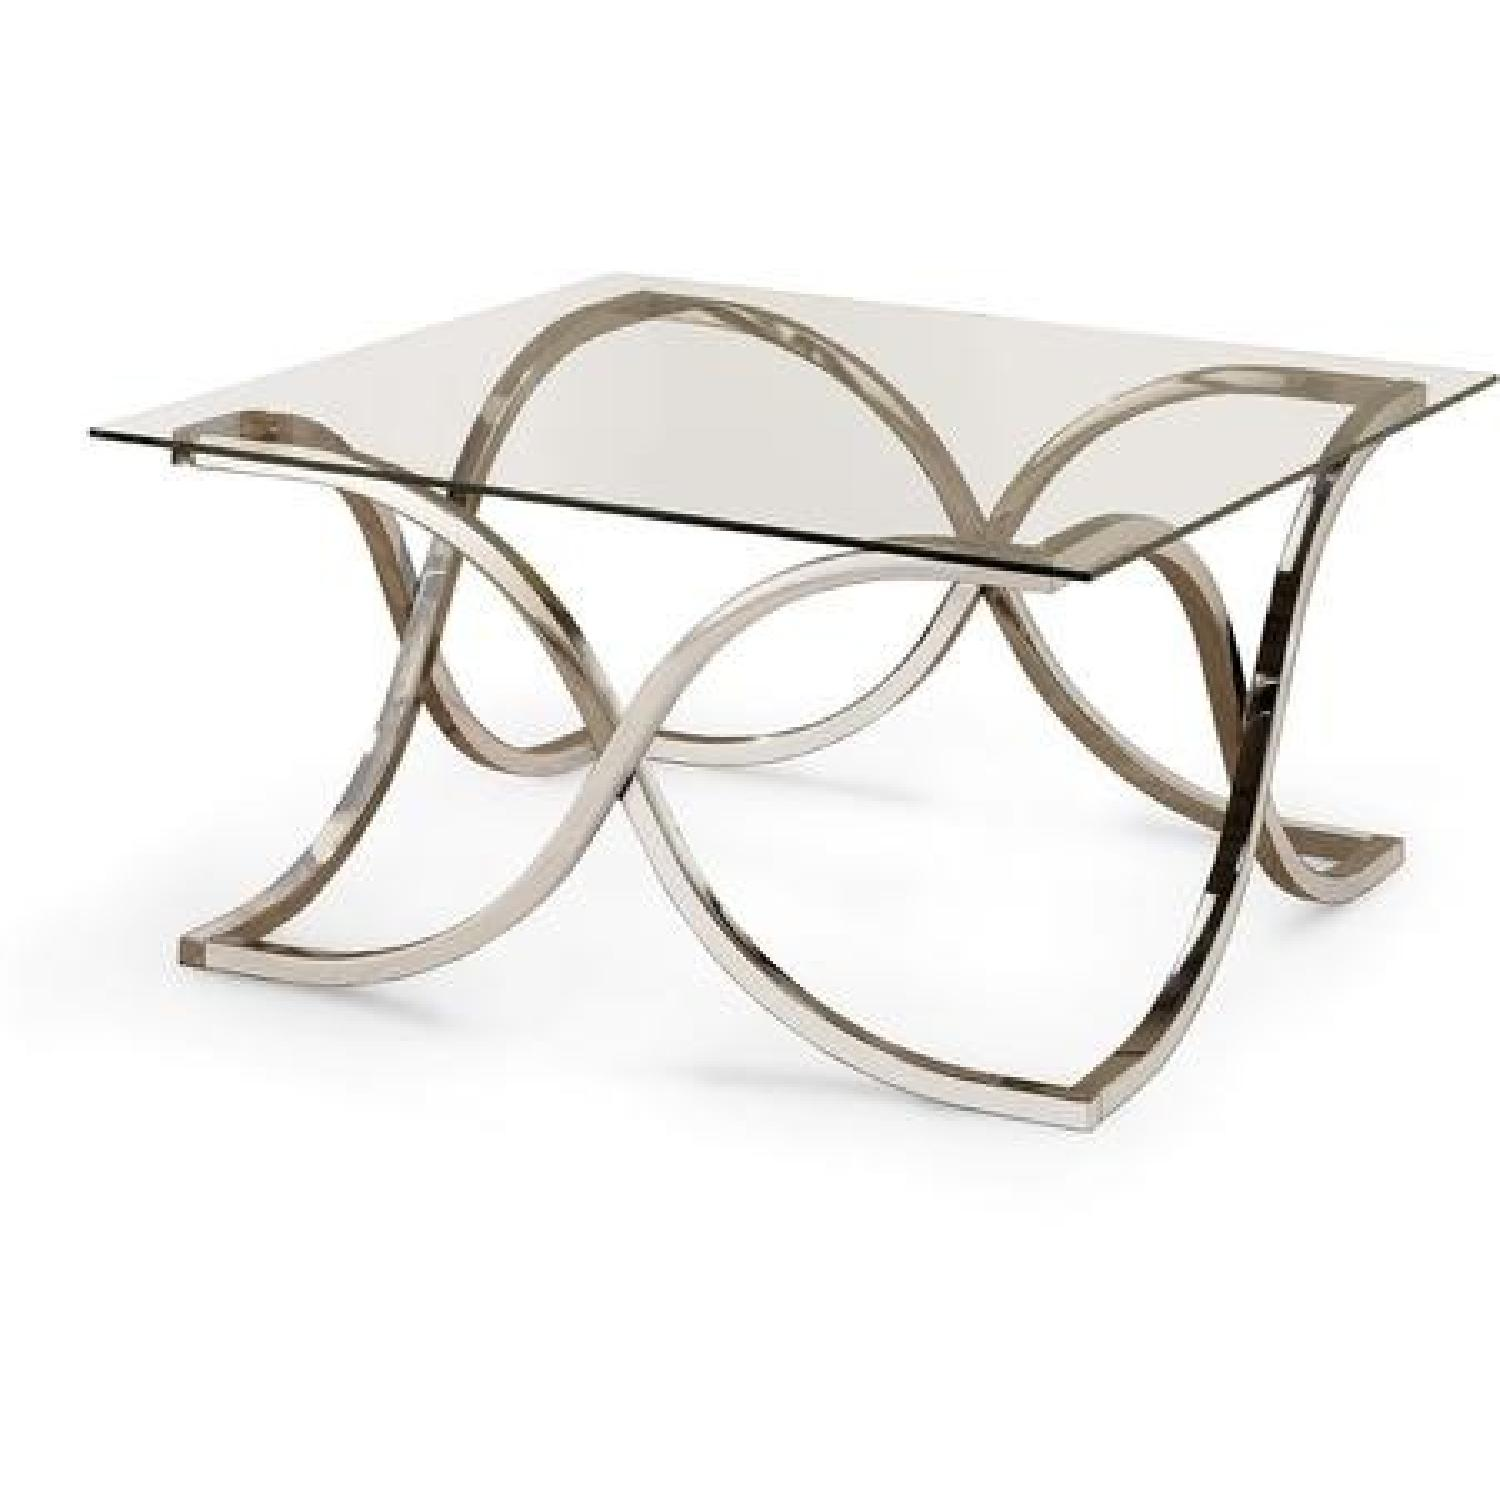 Contemporary Glass Coffee Table with Nickel Finish - image-0